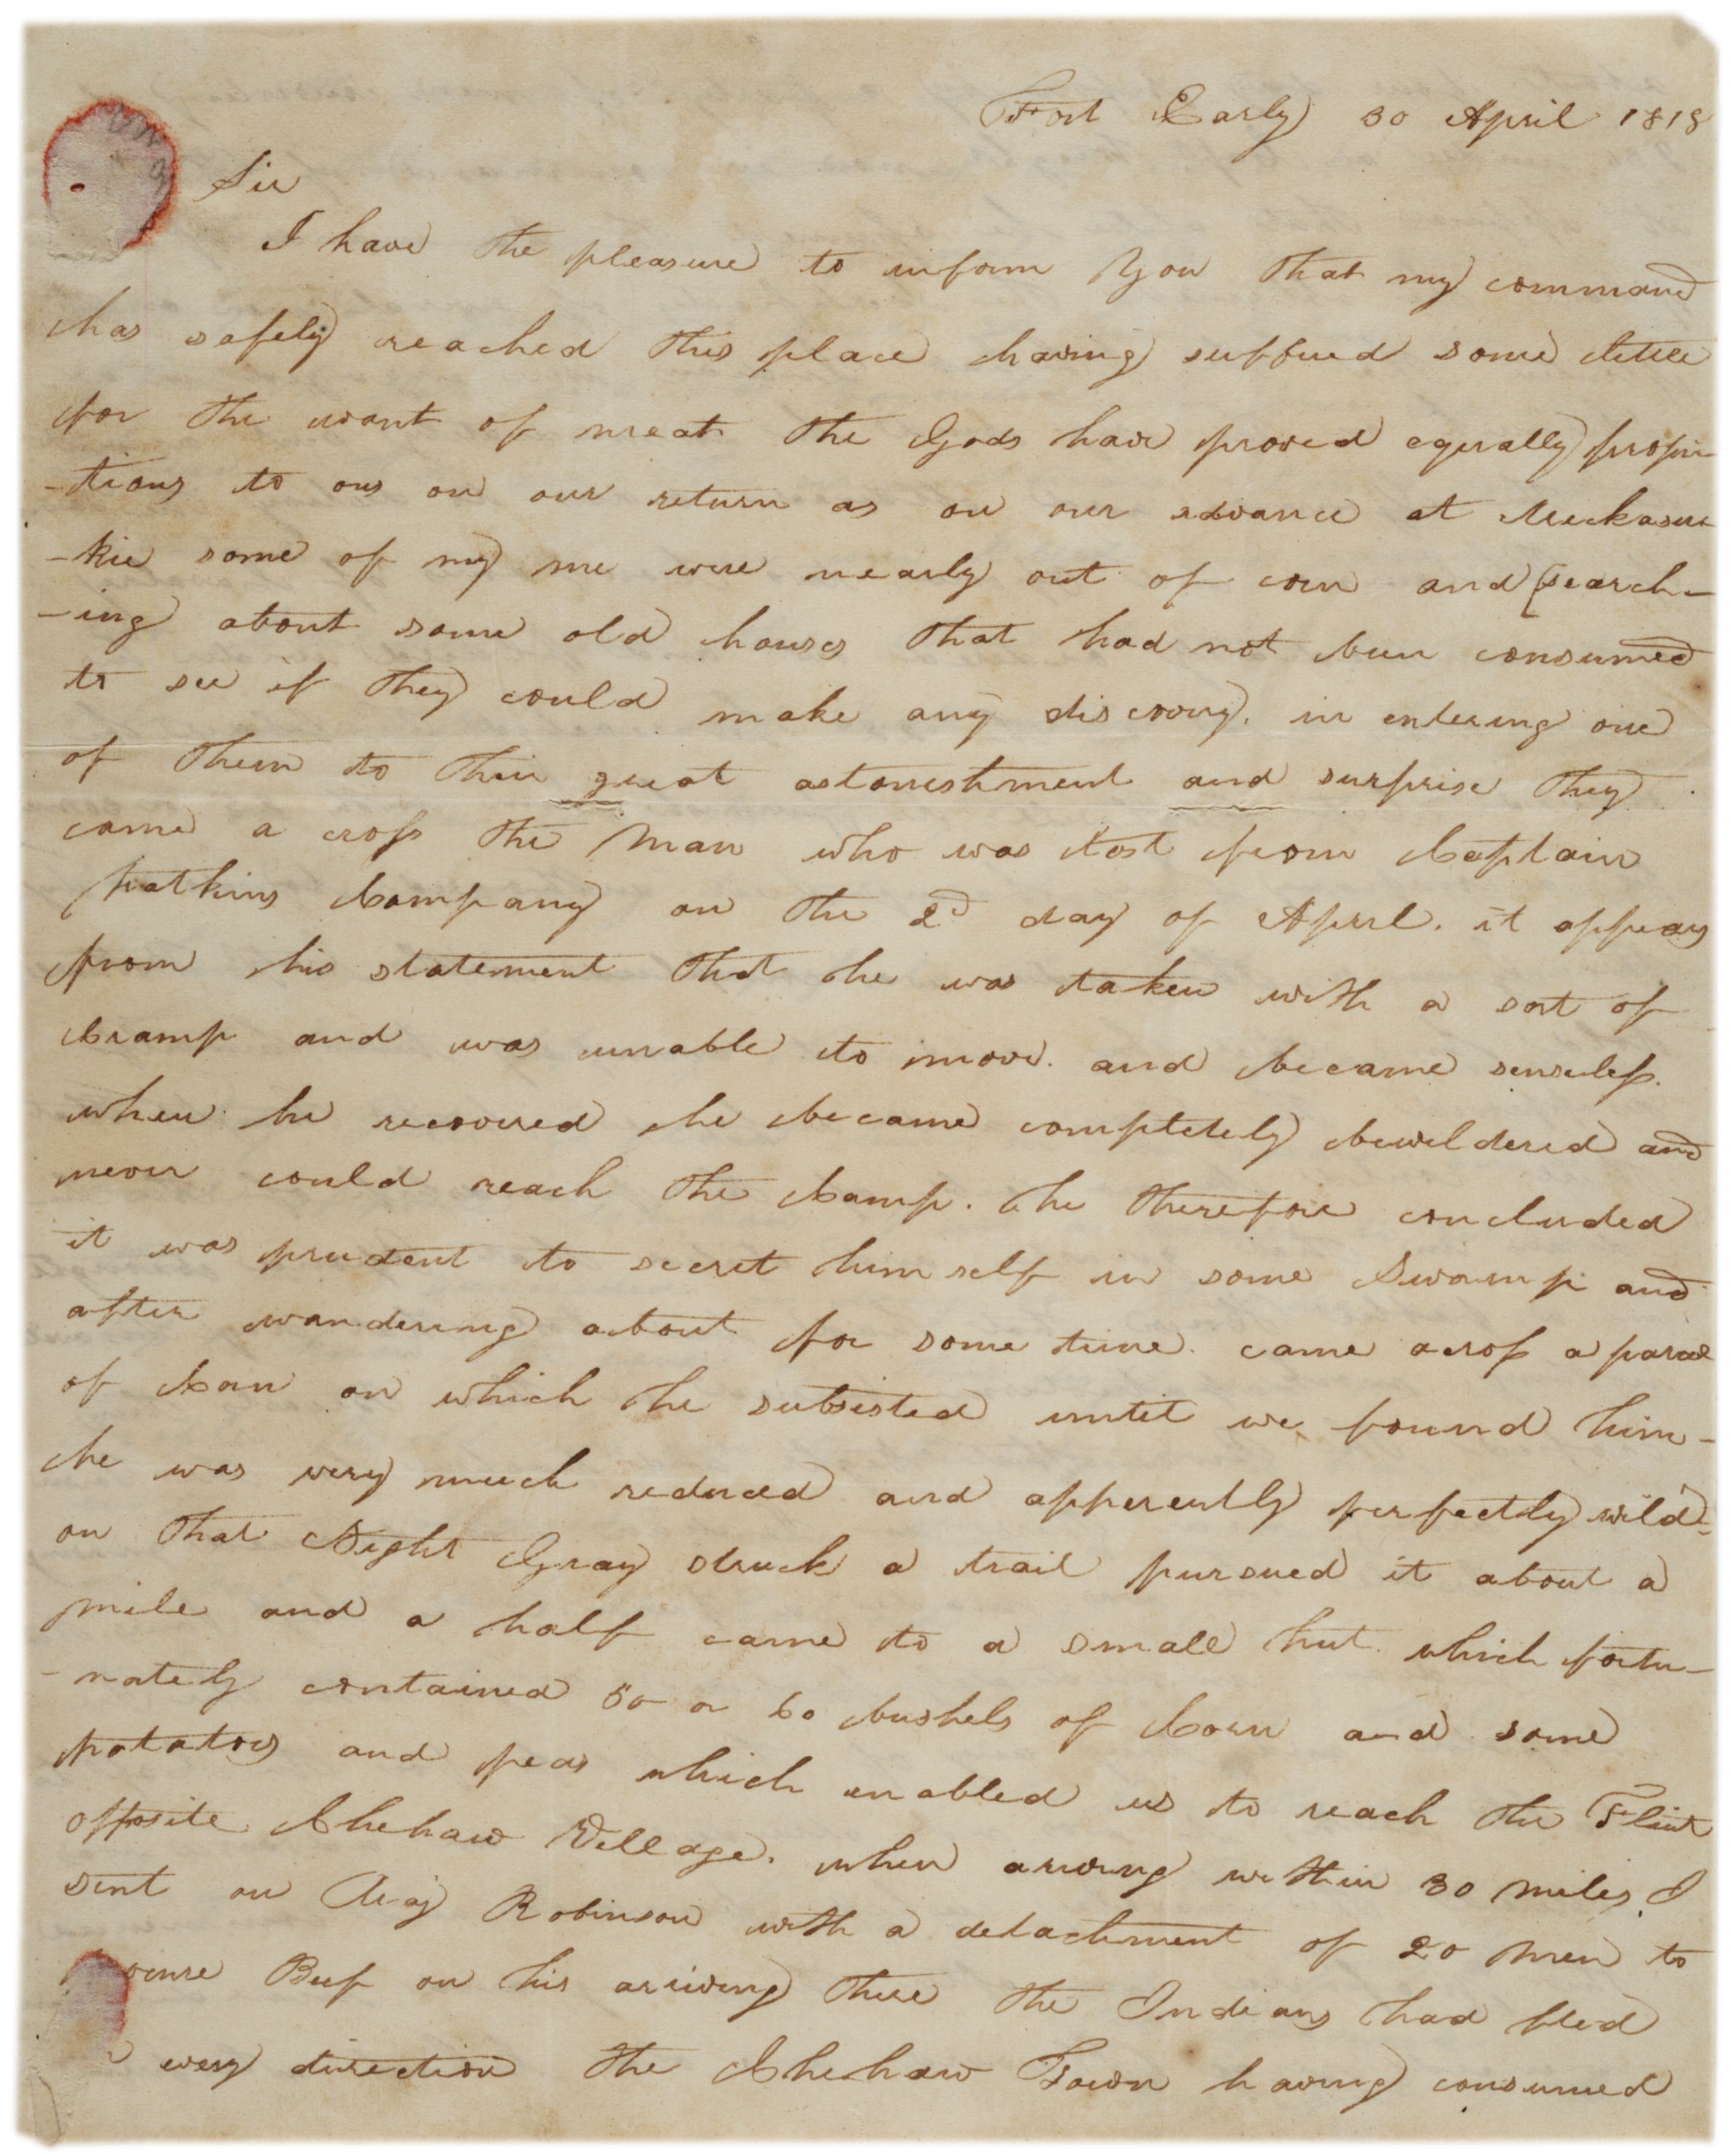 history the indian removal act essay Yes: historical biographer robert v remini argues that andrew jackson did not seek to destroy the indian removal act of 1830 was the only way to protect native americans from annihilation at the hands of white evarts, under the nom de plume william penn, had already published his essays on the present crisis.